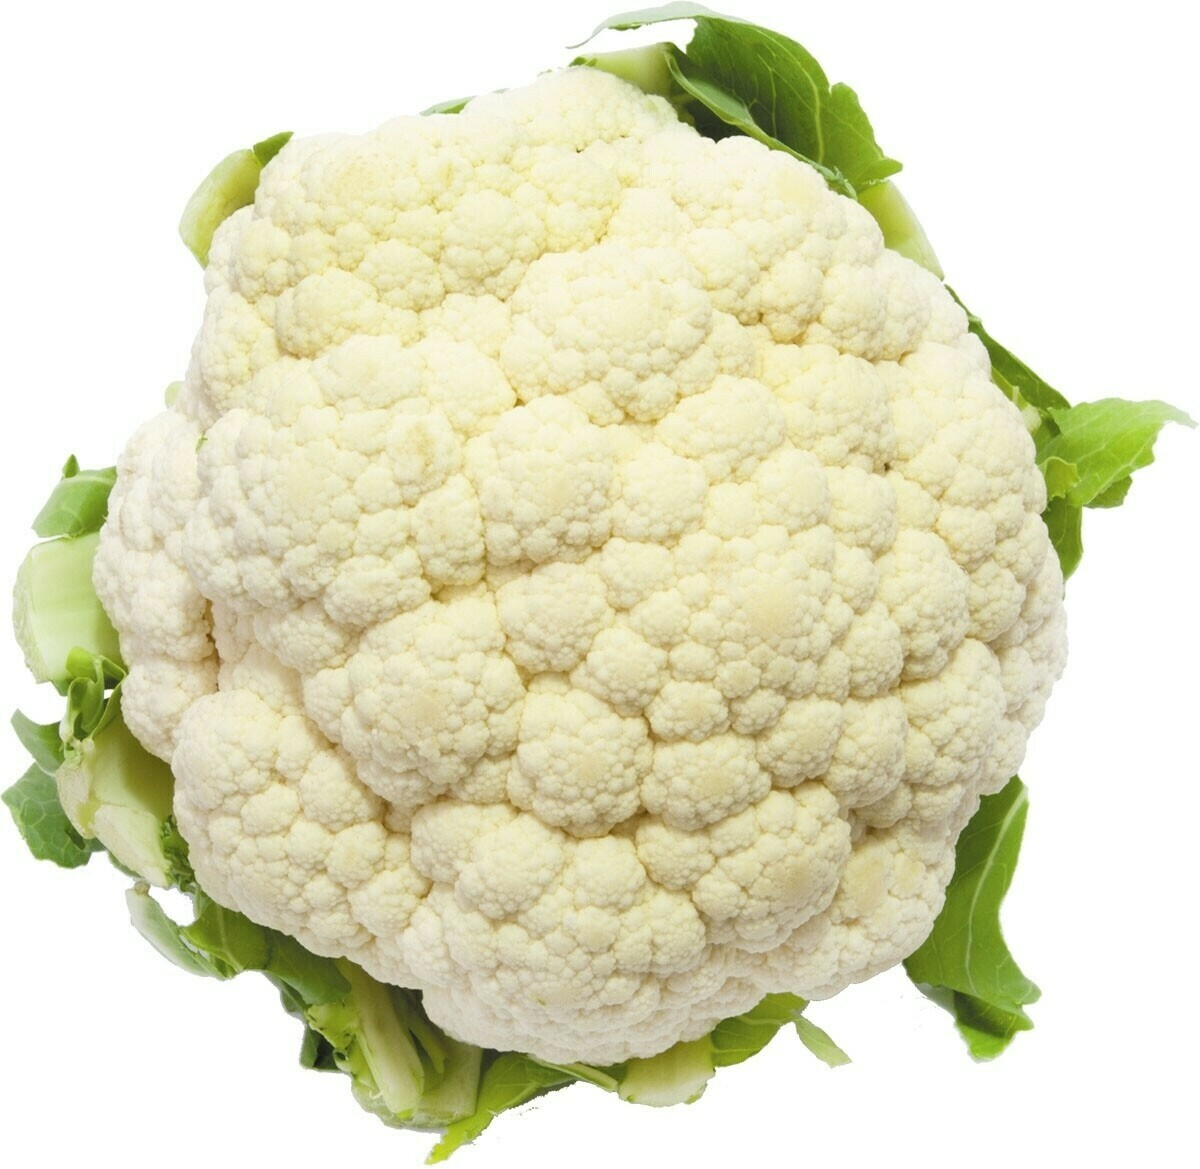 CAULIFLOWER PC